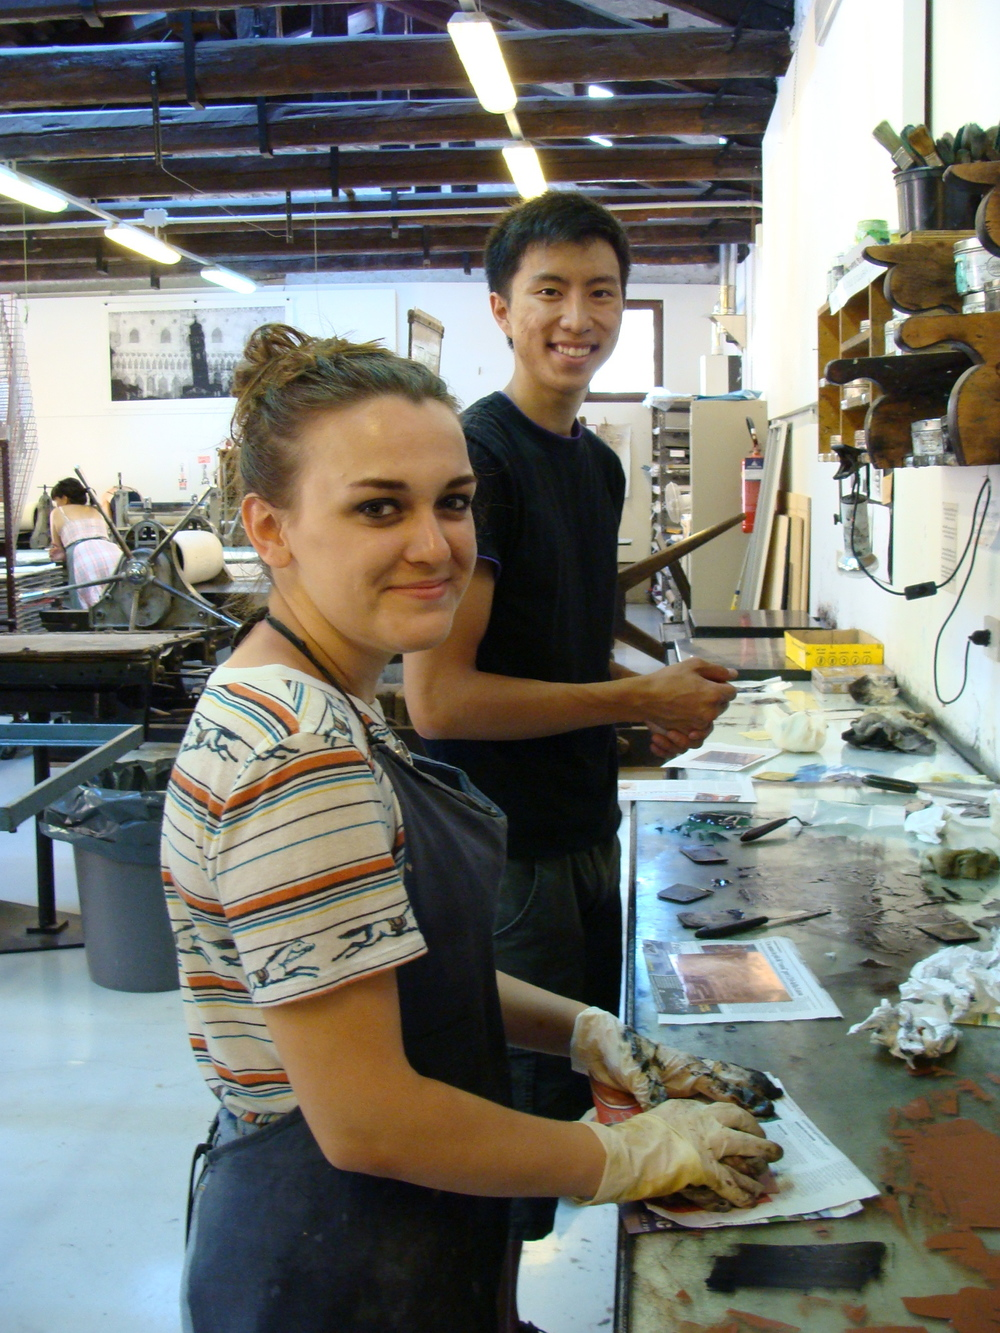 Students Michele Jenkins and Paul Lee at work in the Scuola di Grafica printmaking studio (photo: Kelly Davis).